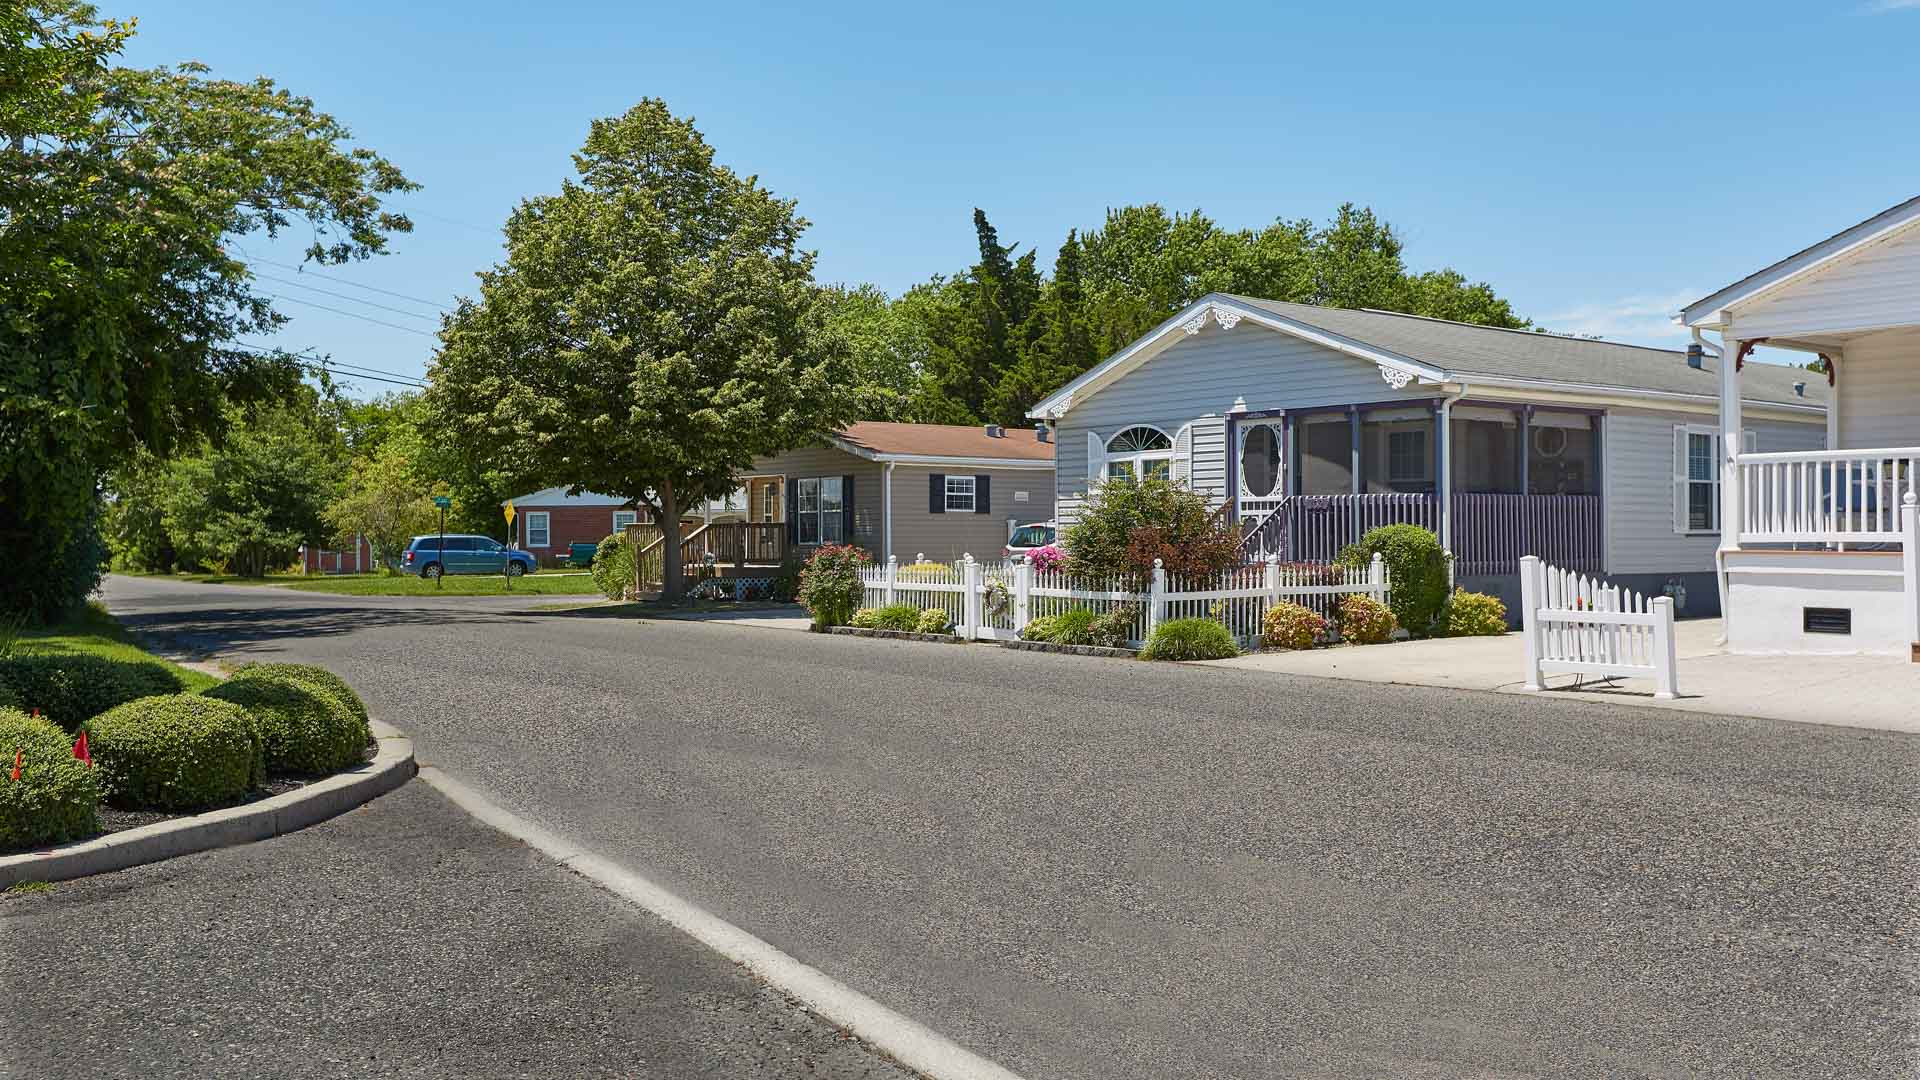 Cape May Crossing 55+ Manufactured Homes Community Street View in Cape May, NJ